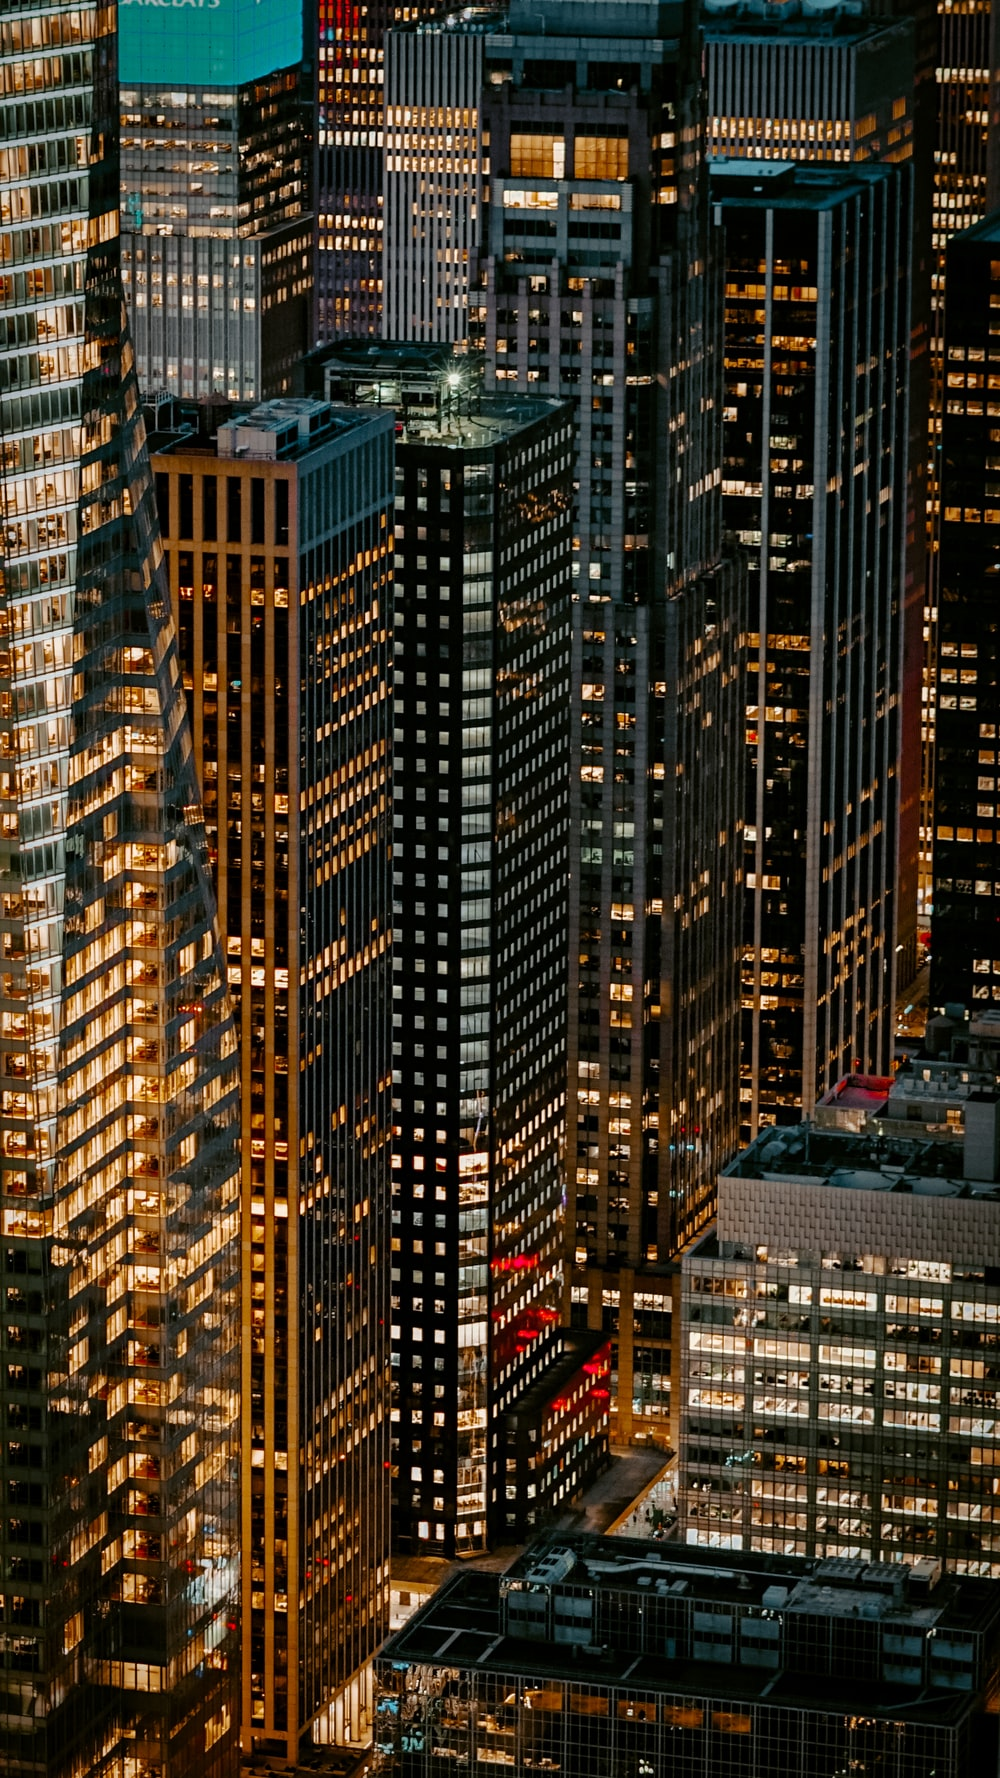 turned-on lights of high-rise building